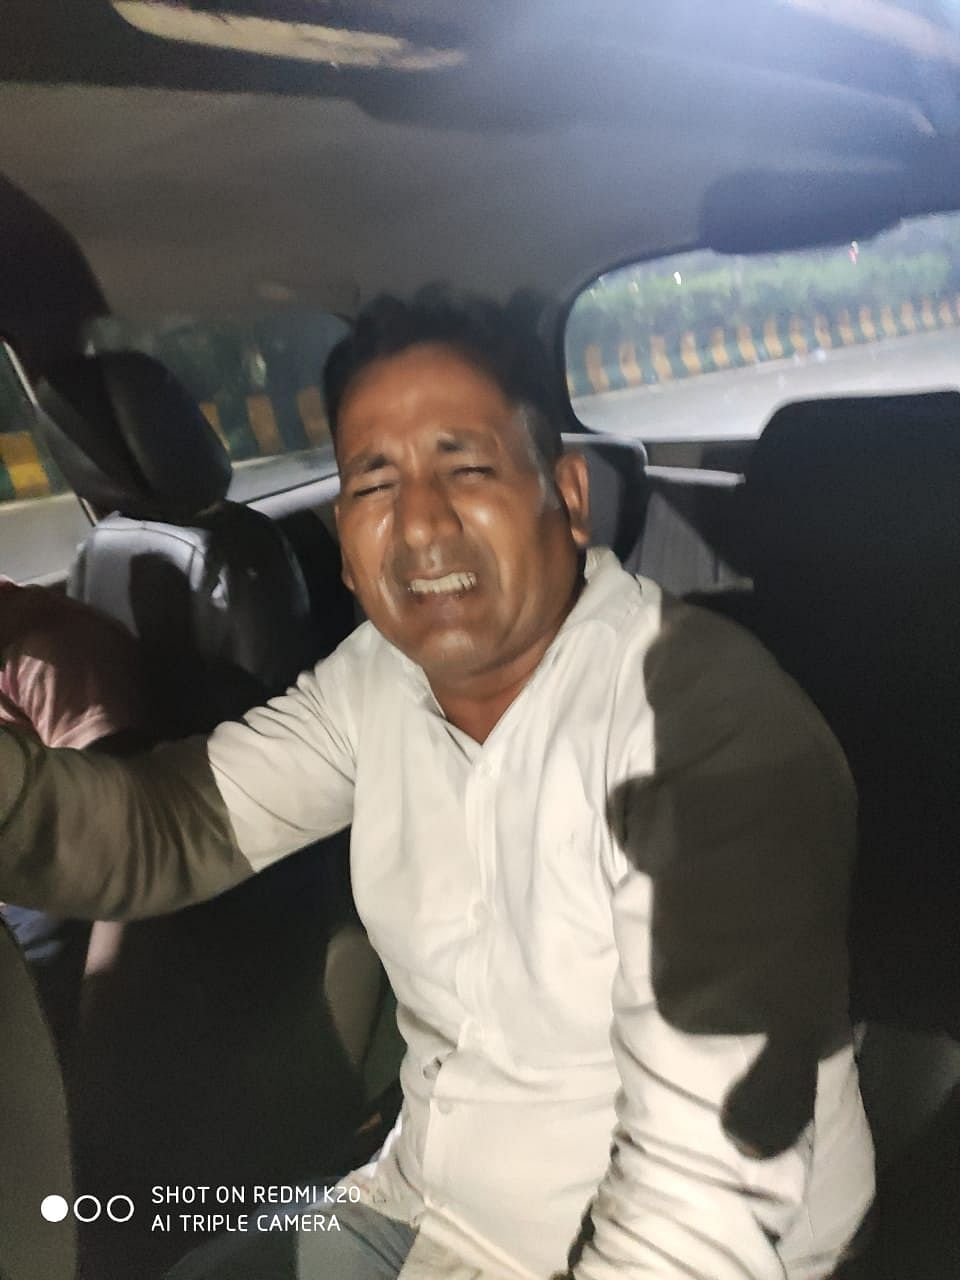 Four Criminals Who Gave Lift And Then Robbed People Arrested In Noida